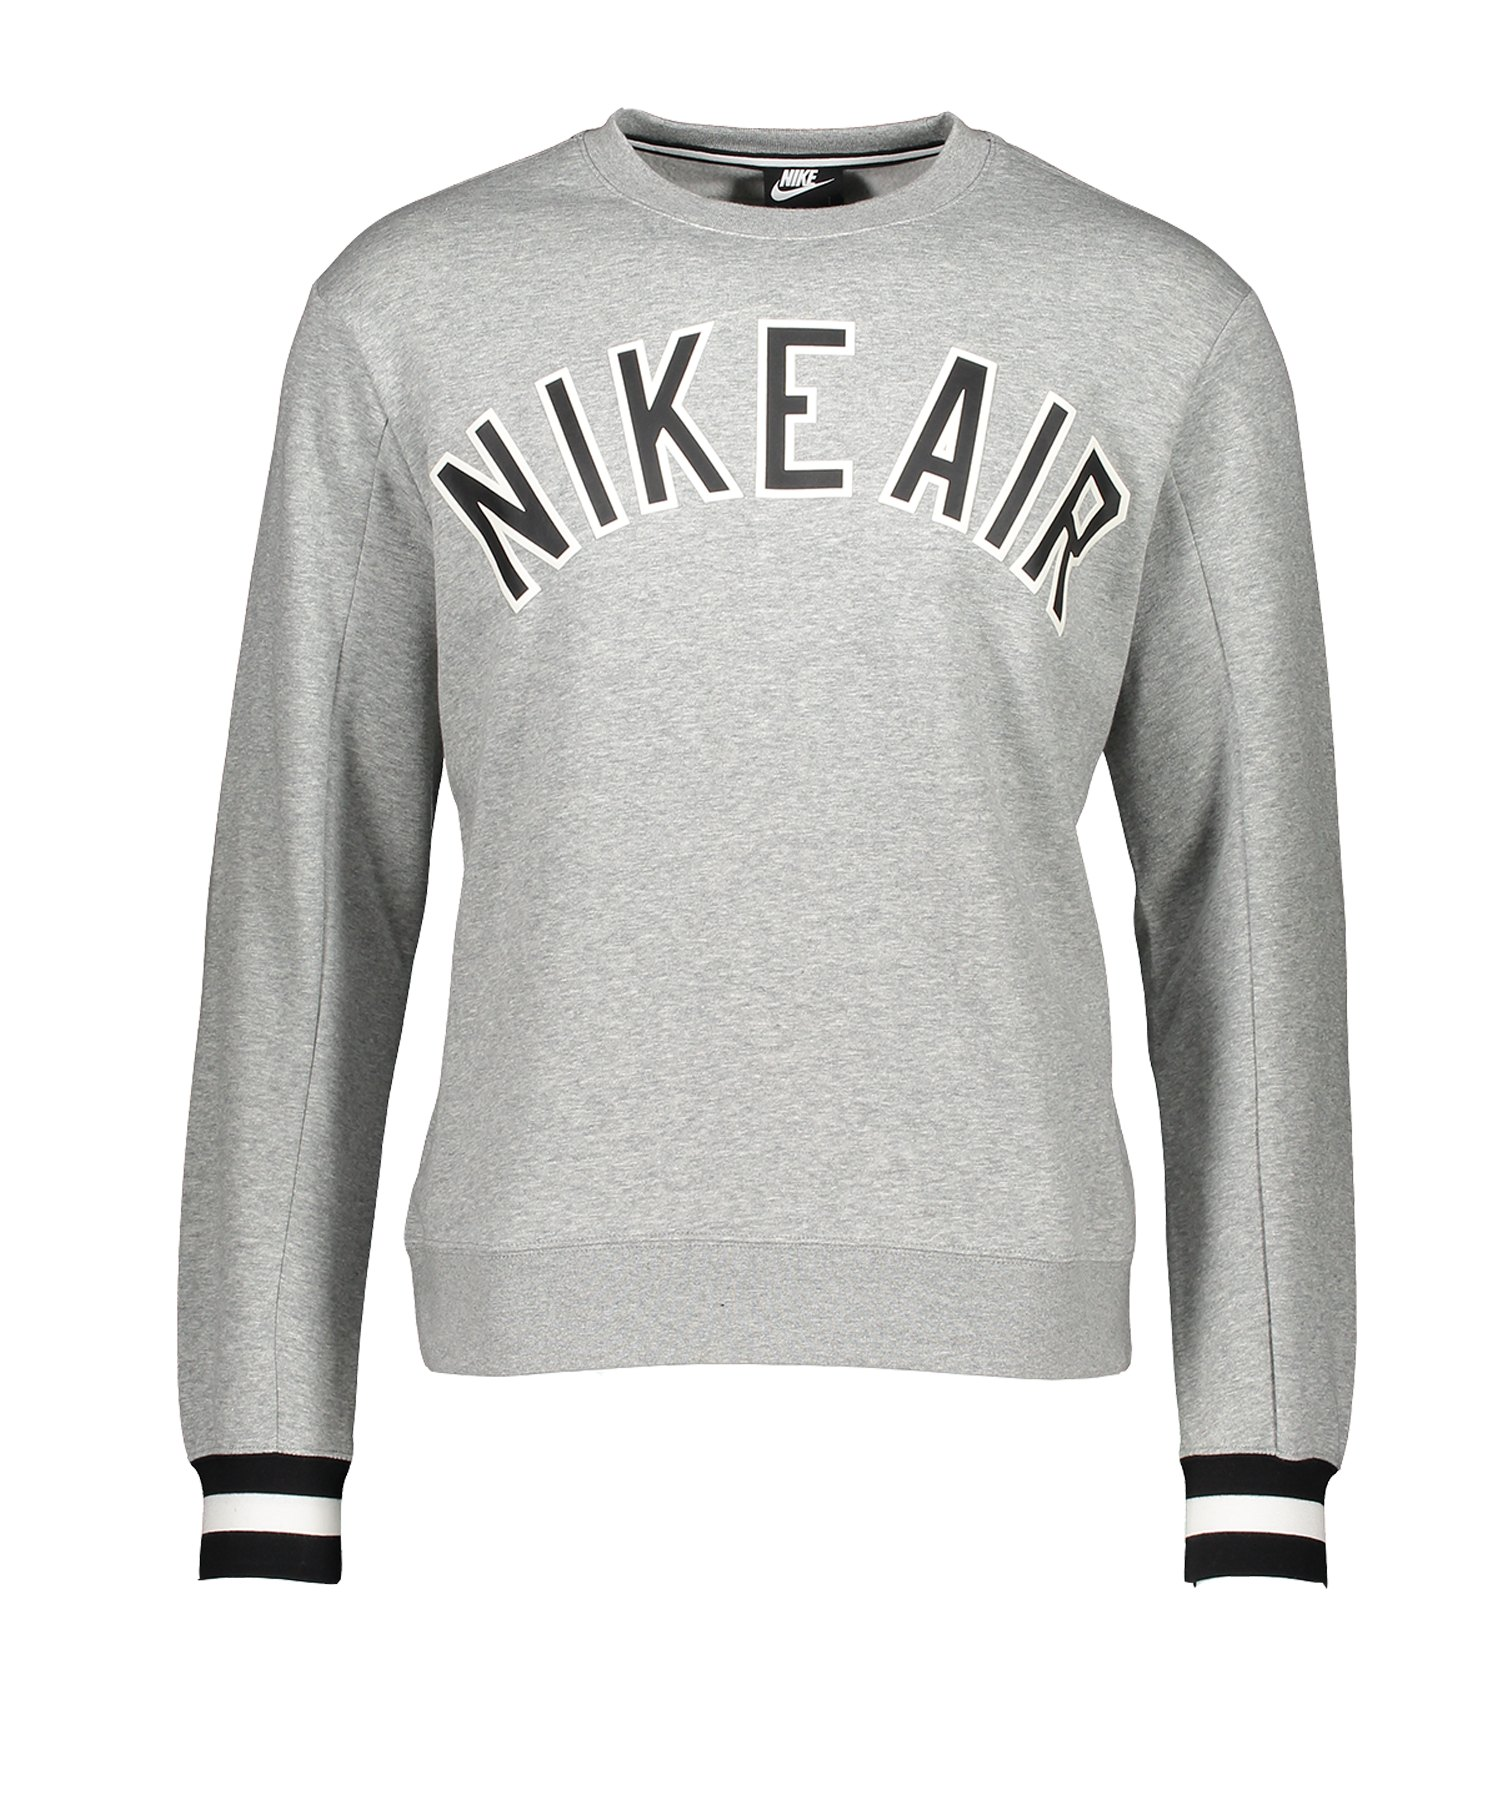 Nike Air Crew Fleece Sweatshirt Grau F063 - Grau